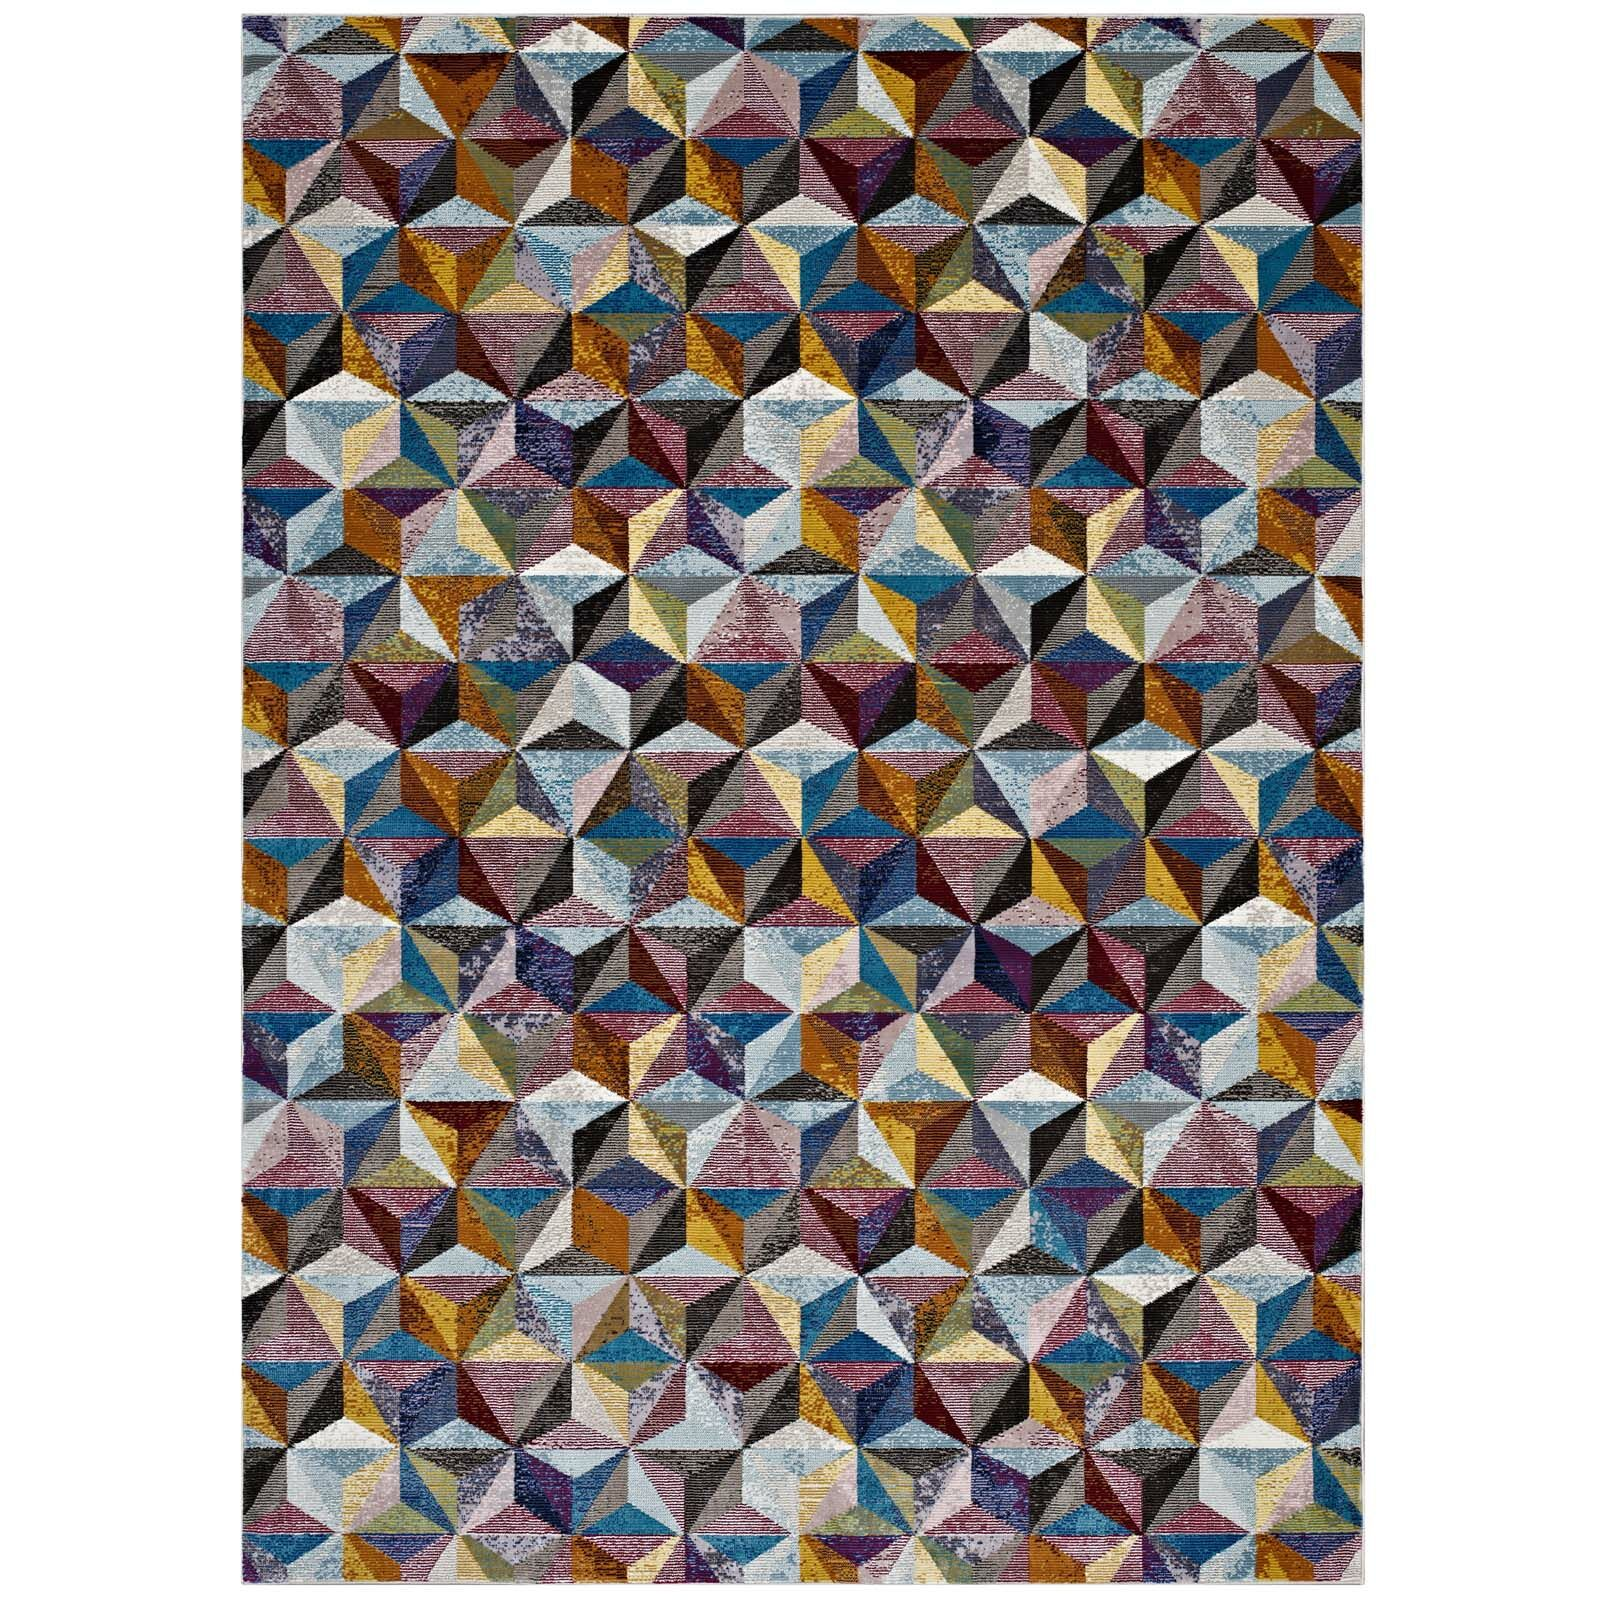 Edward Blue/Red/Yellow Area Rug Rug Size: Rectangle 5'3